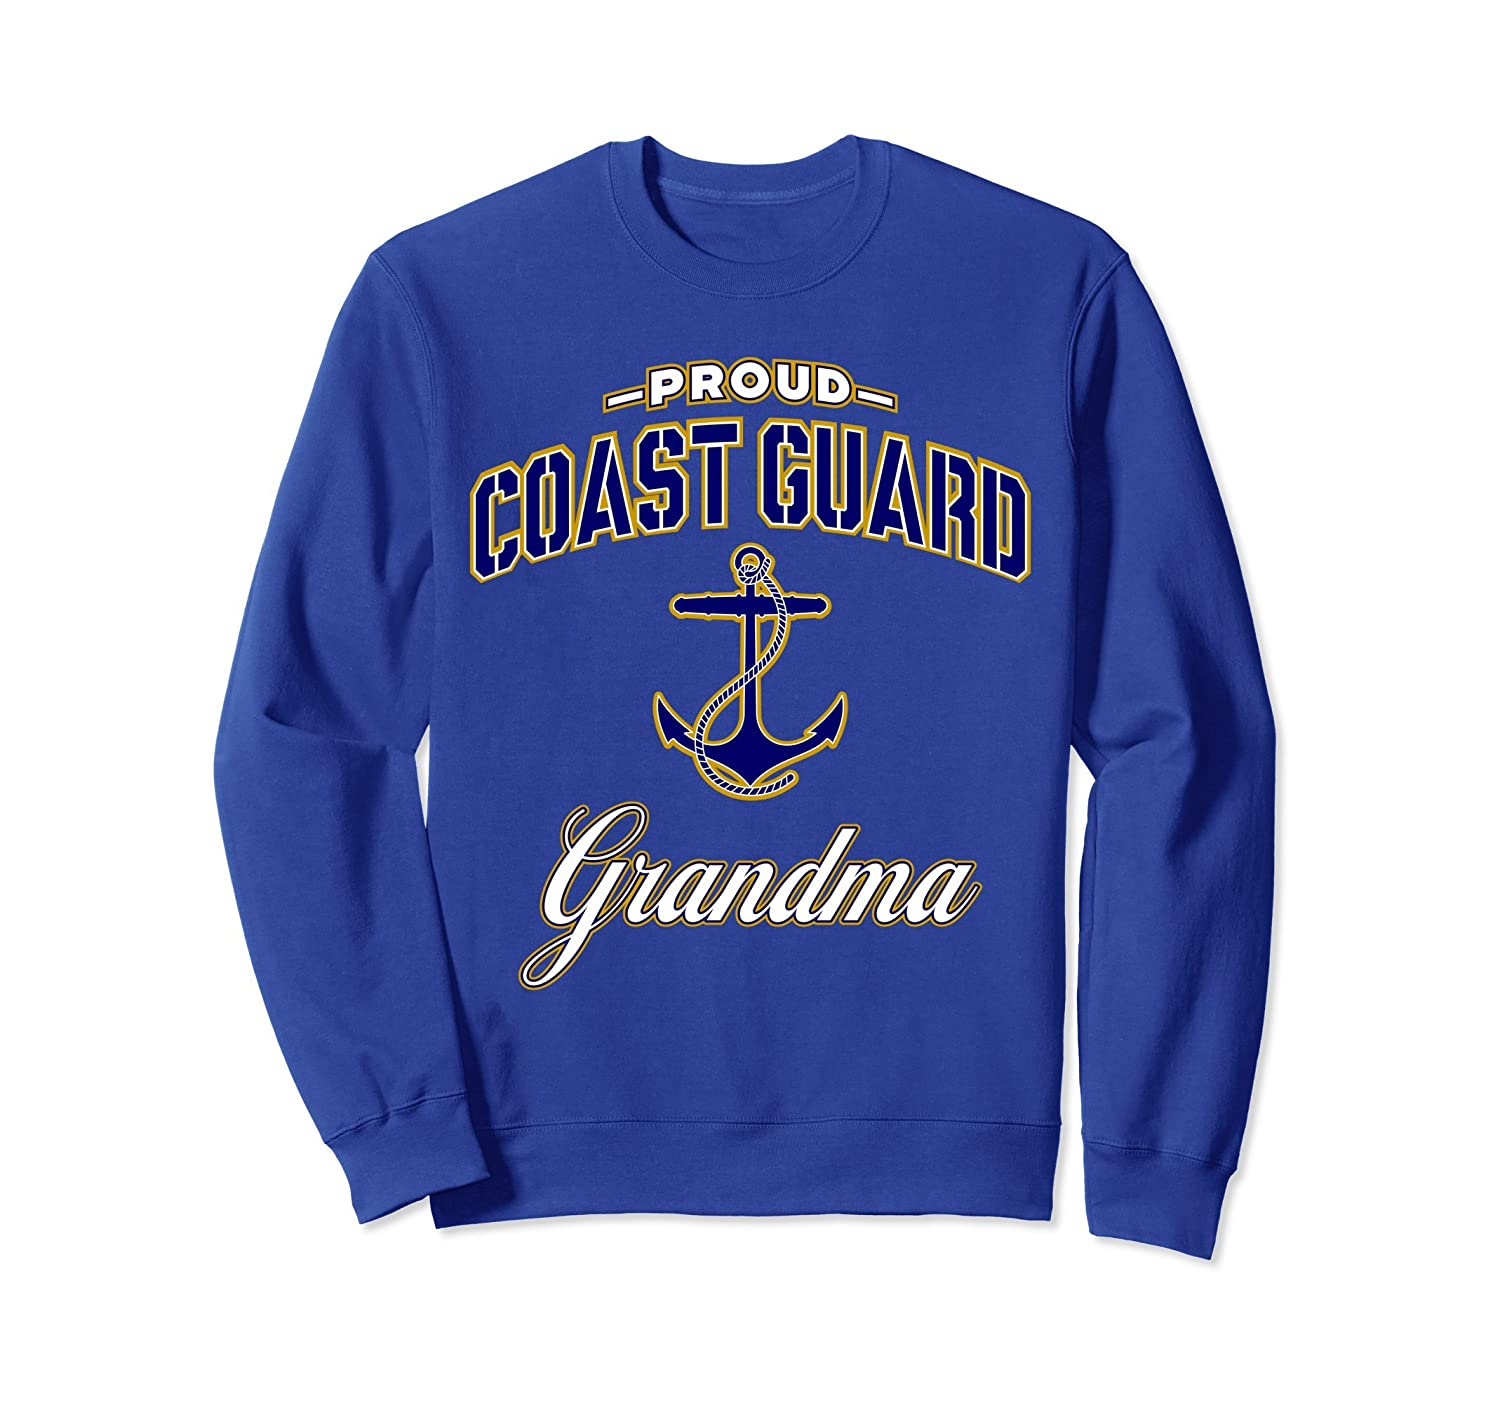 Coast Guard Grandma Sweatshirt Gift for Women-alottee gift